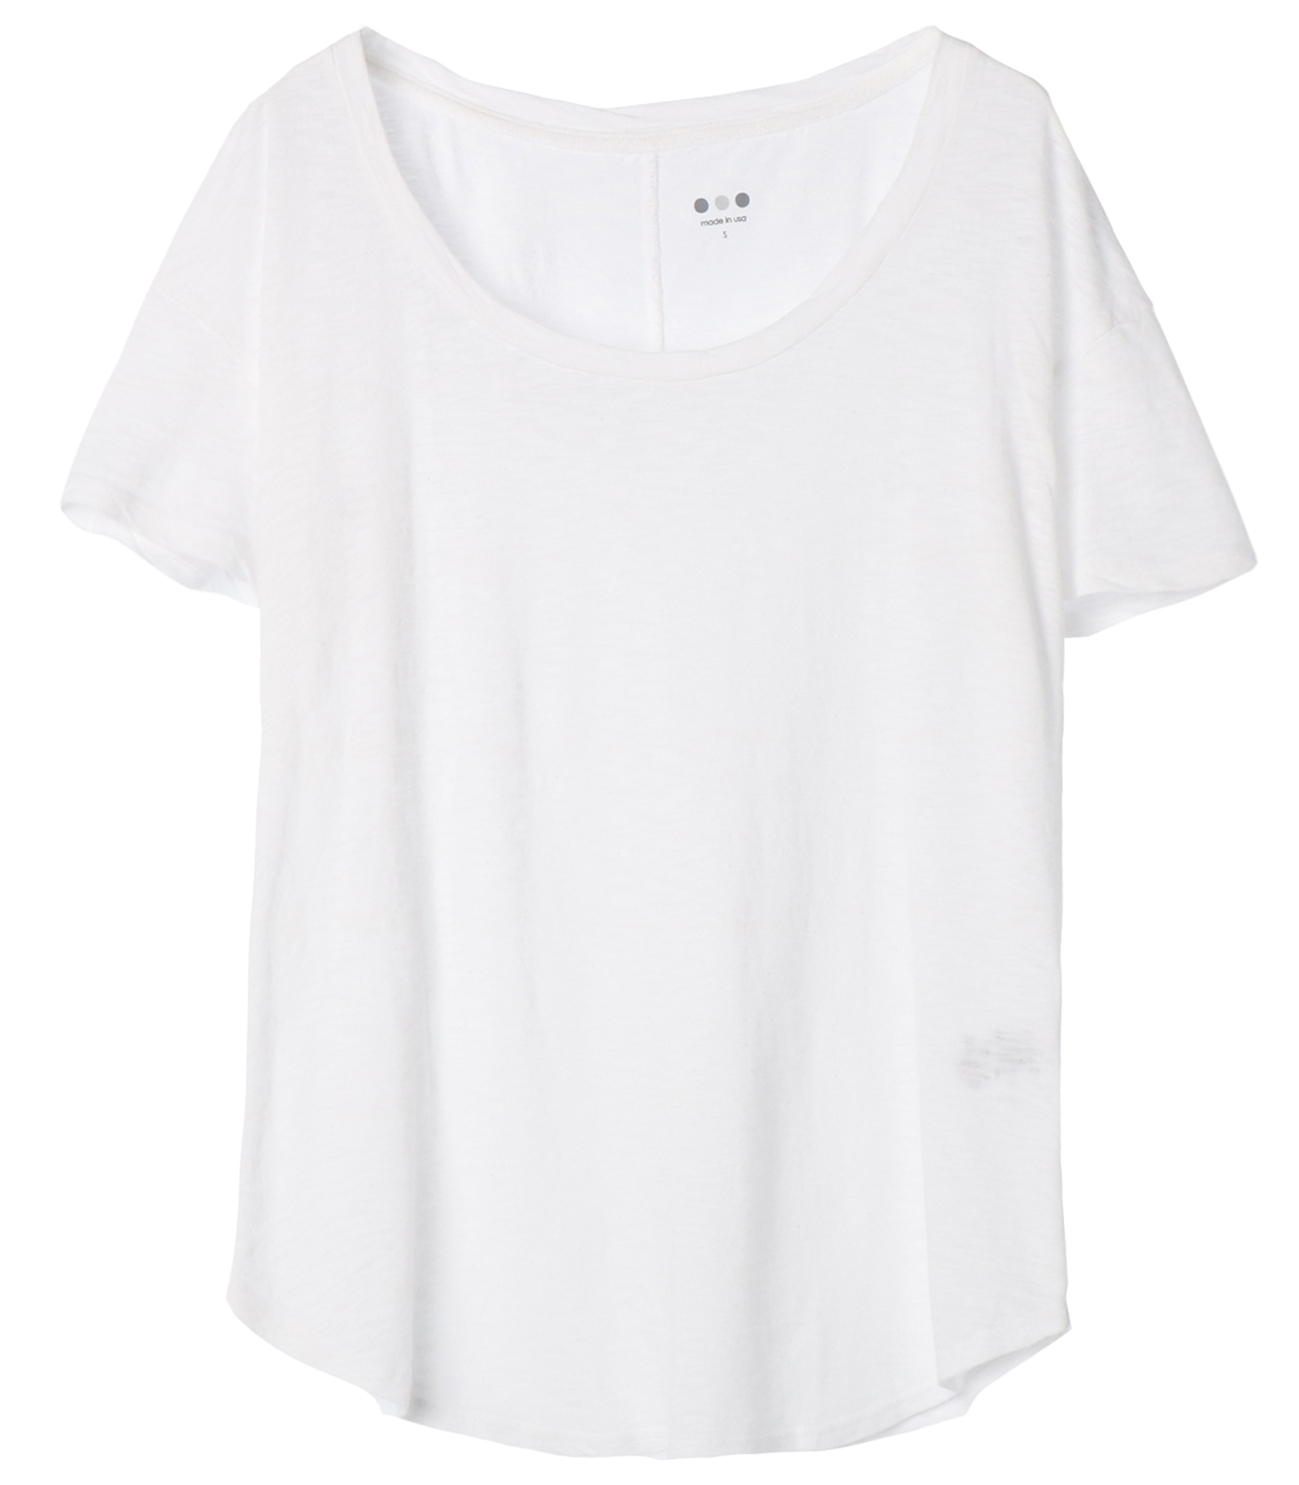 eco knit basic scoop neck tee 詳細画像 white